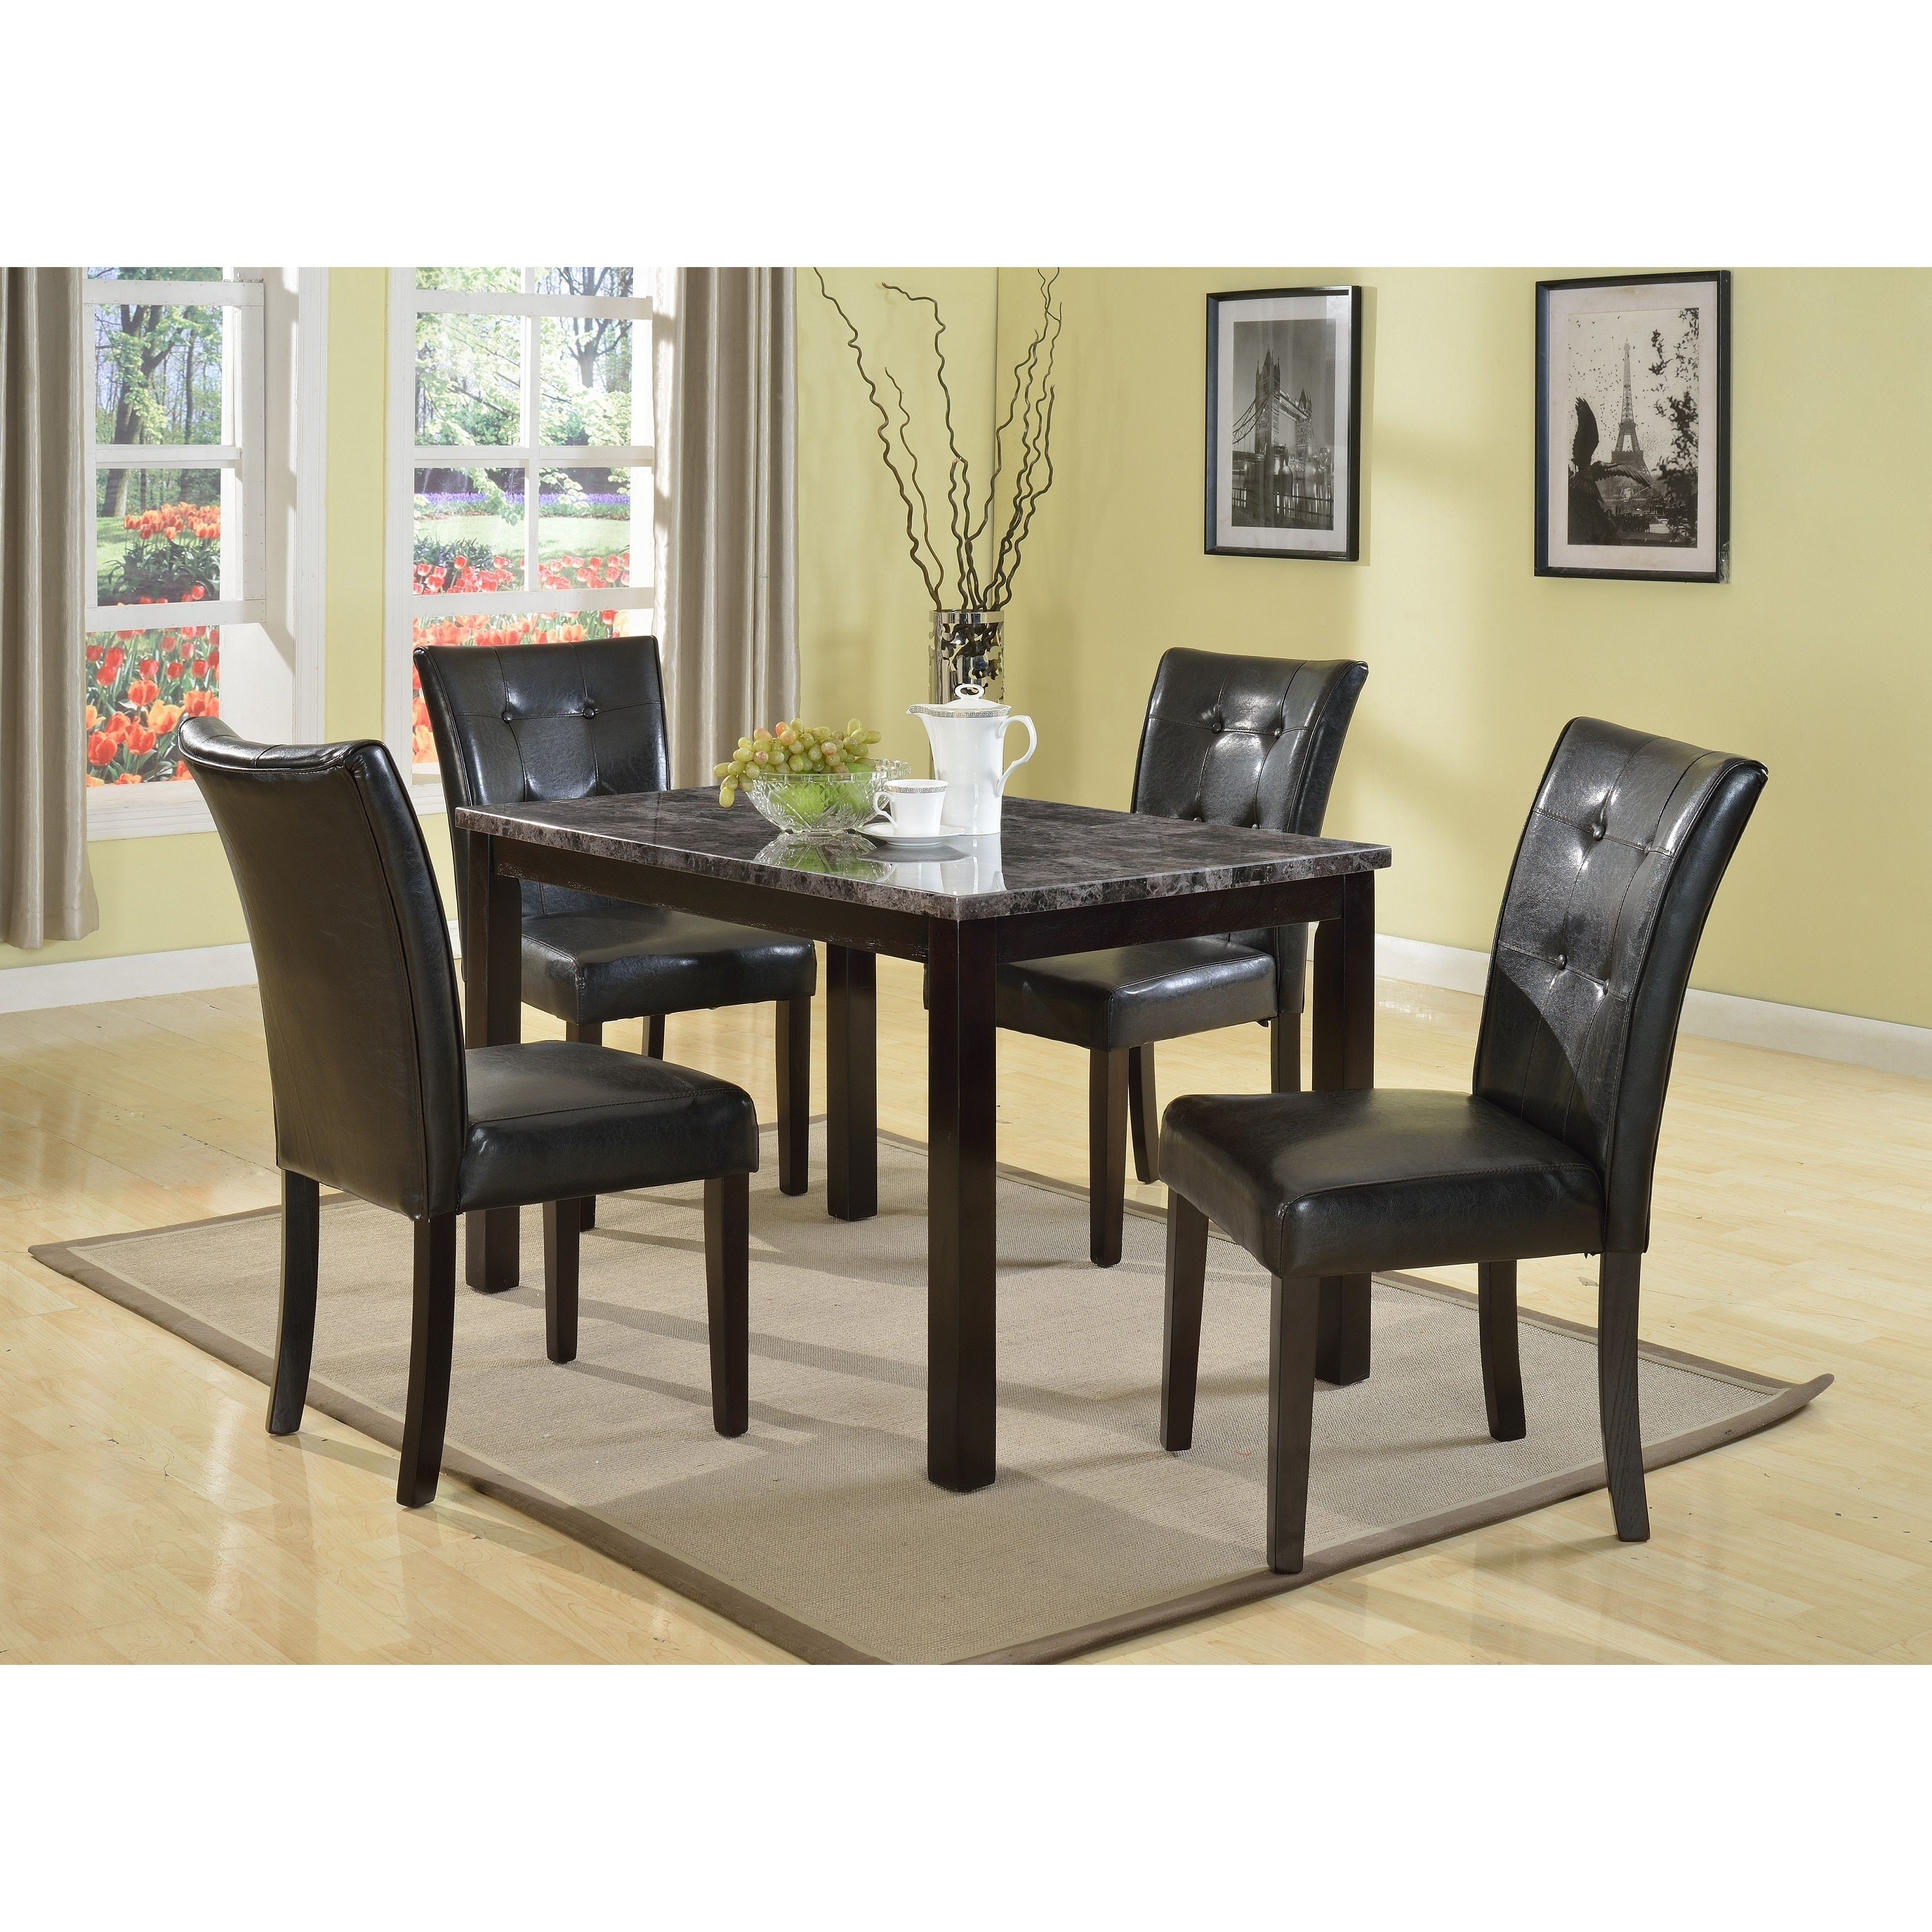 Online Ping Bedding Furniture Electronics Jewelry Clothing More Dining Setsdining Tablesmarble Topmarblesdining Room